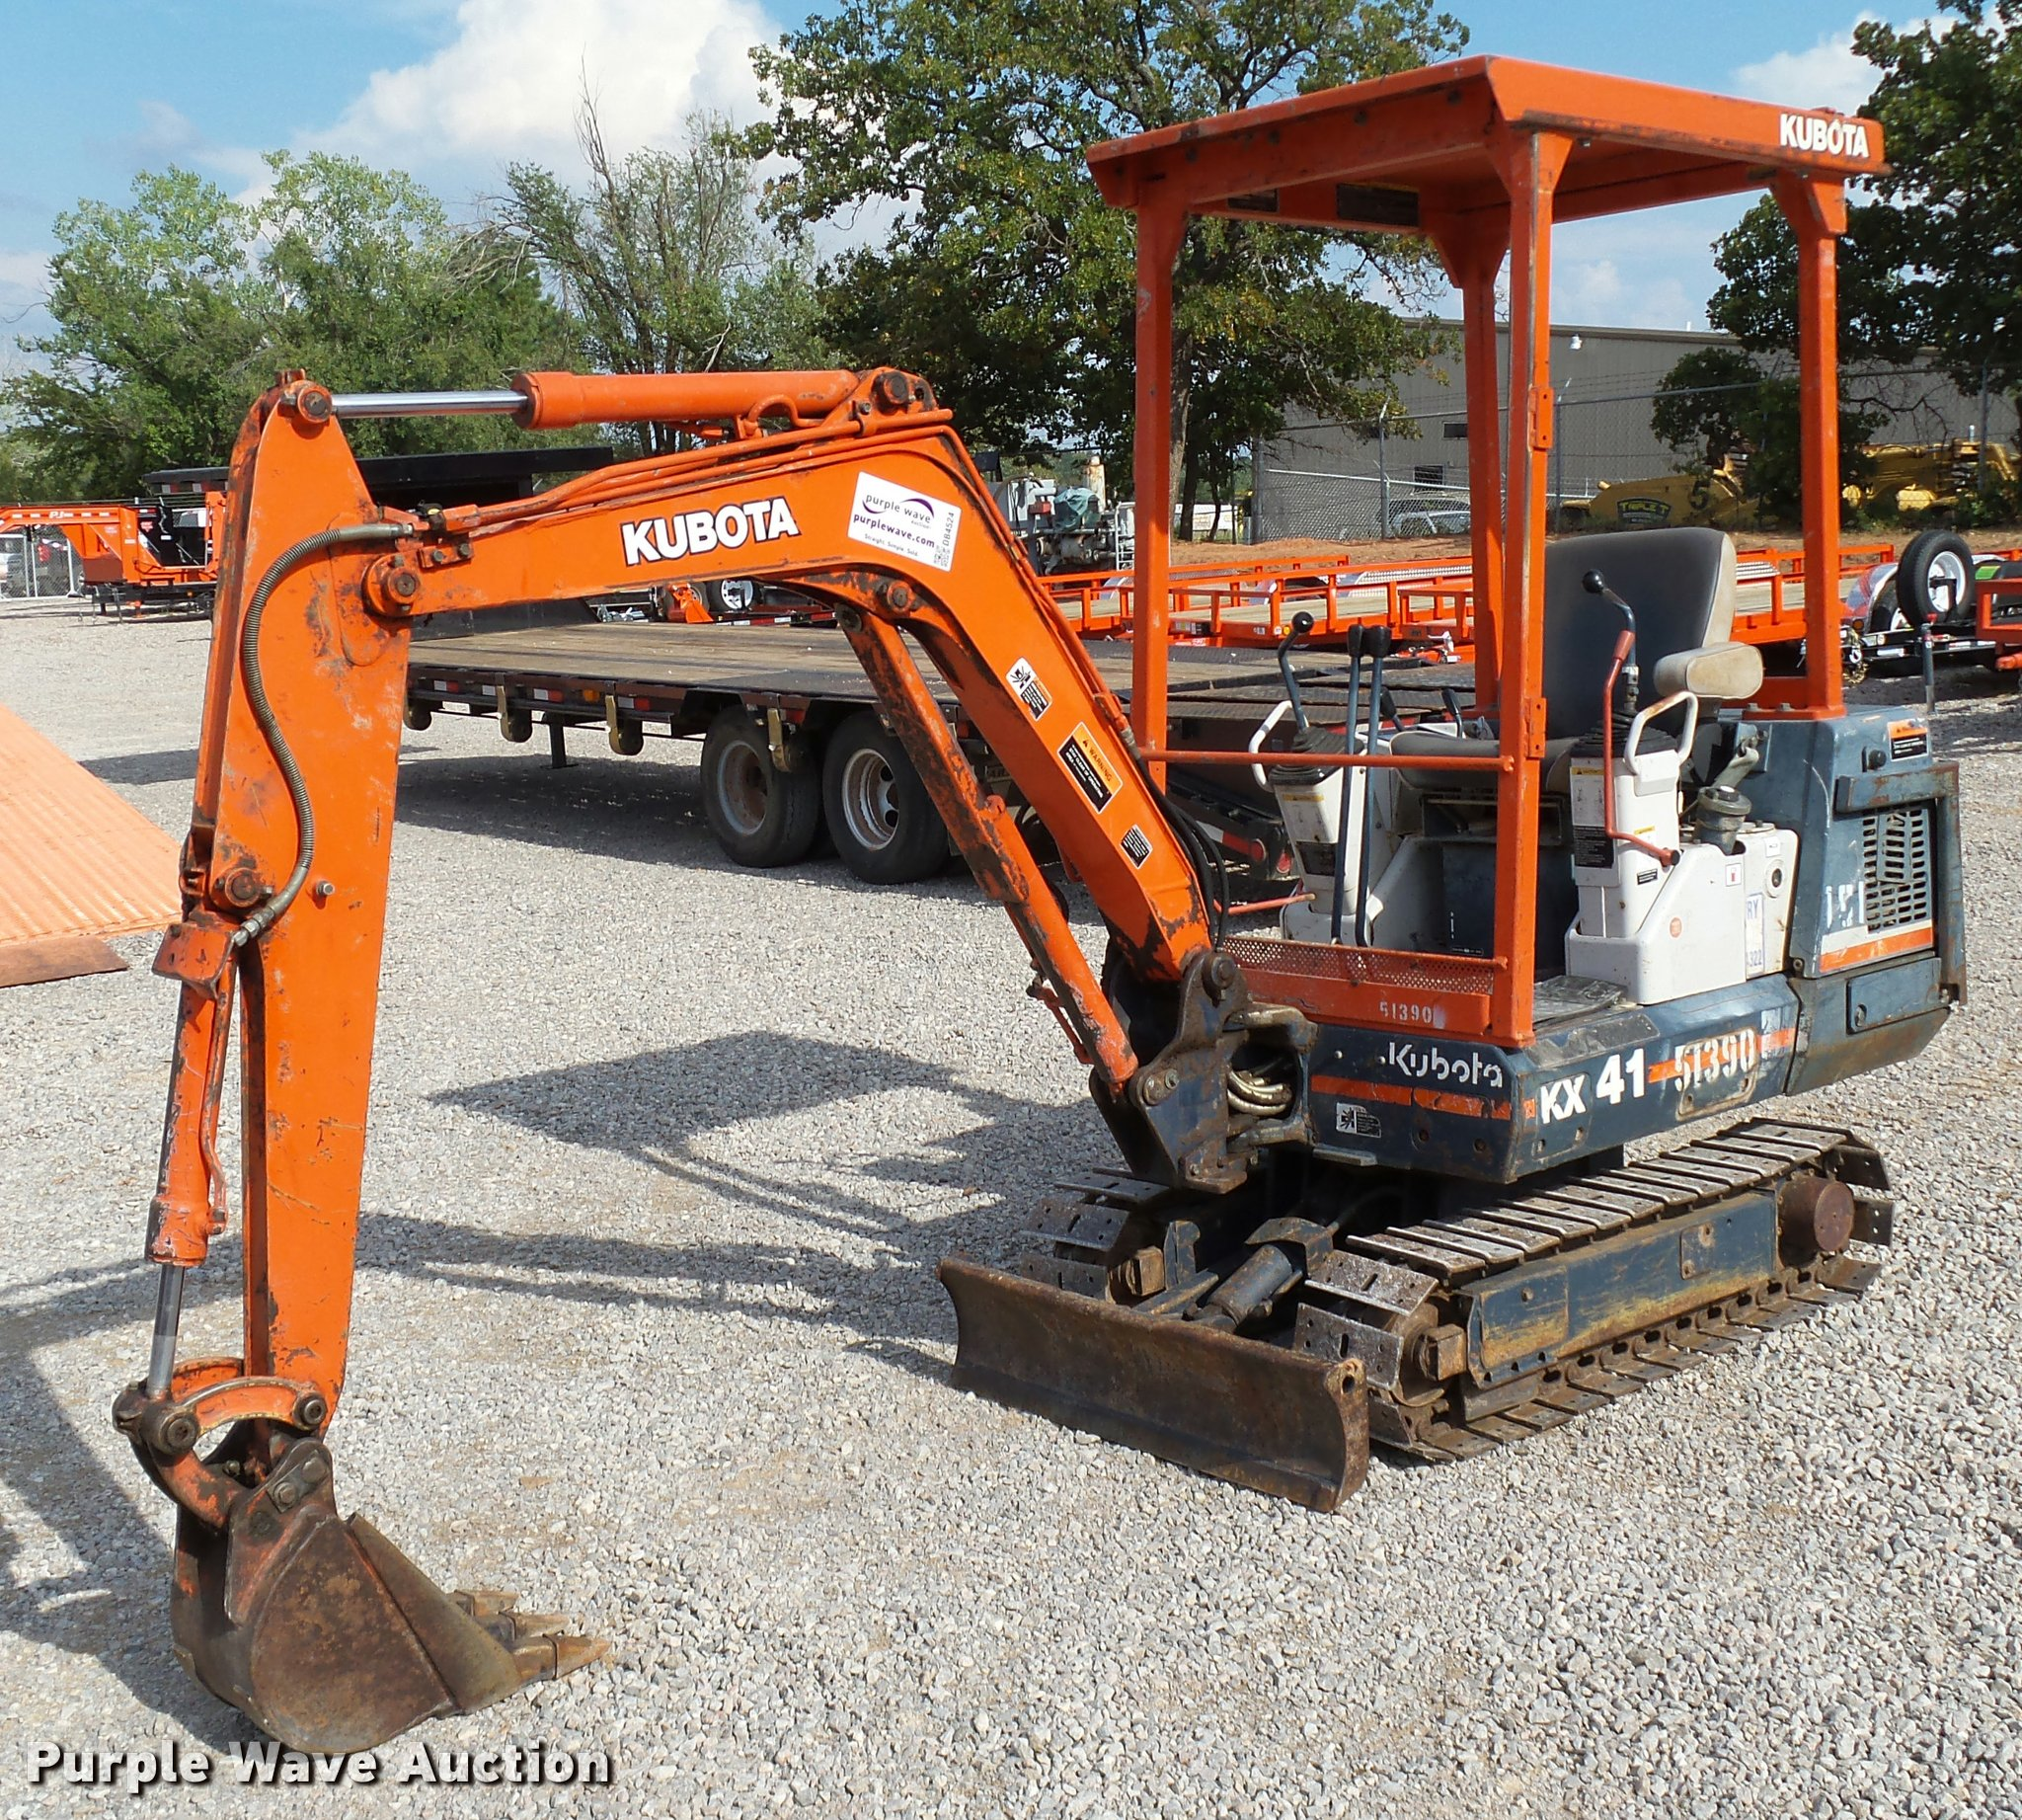 Admirable 1994 Kubota Kx41 Compact Excavator Item Db4524 Sold Sep Wiring 101 Breceaxxcnl